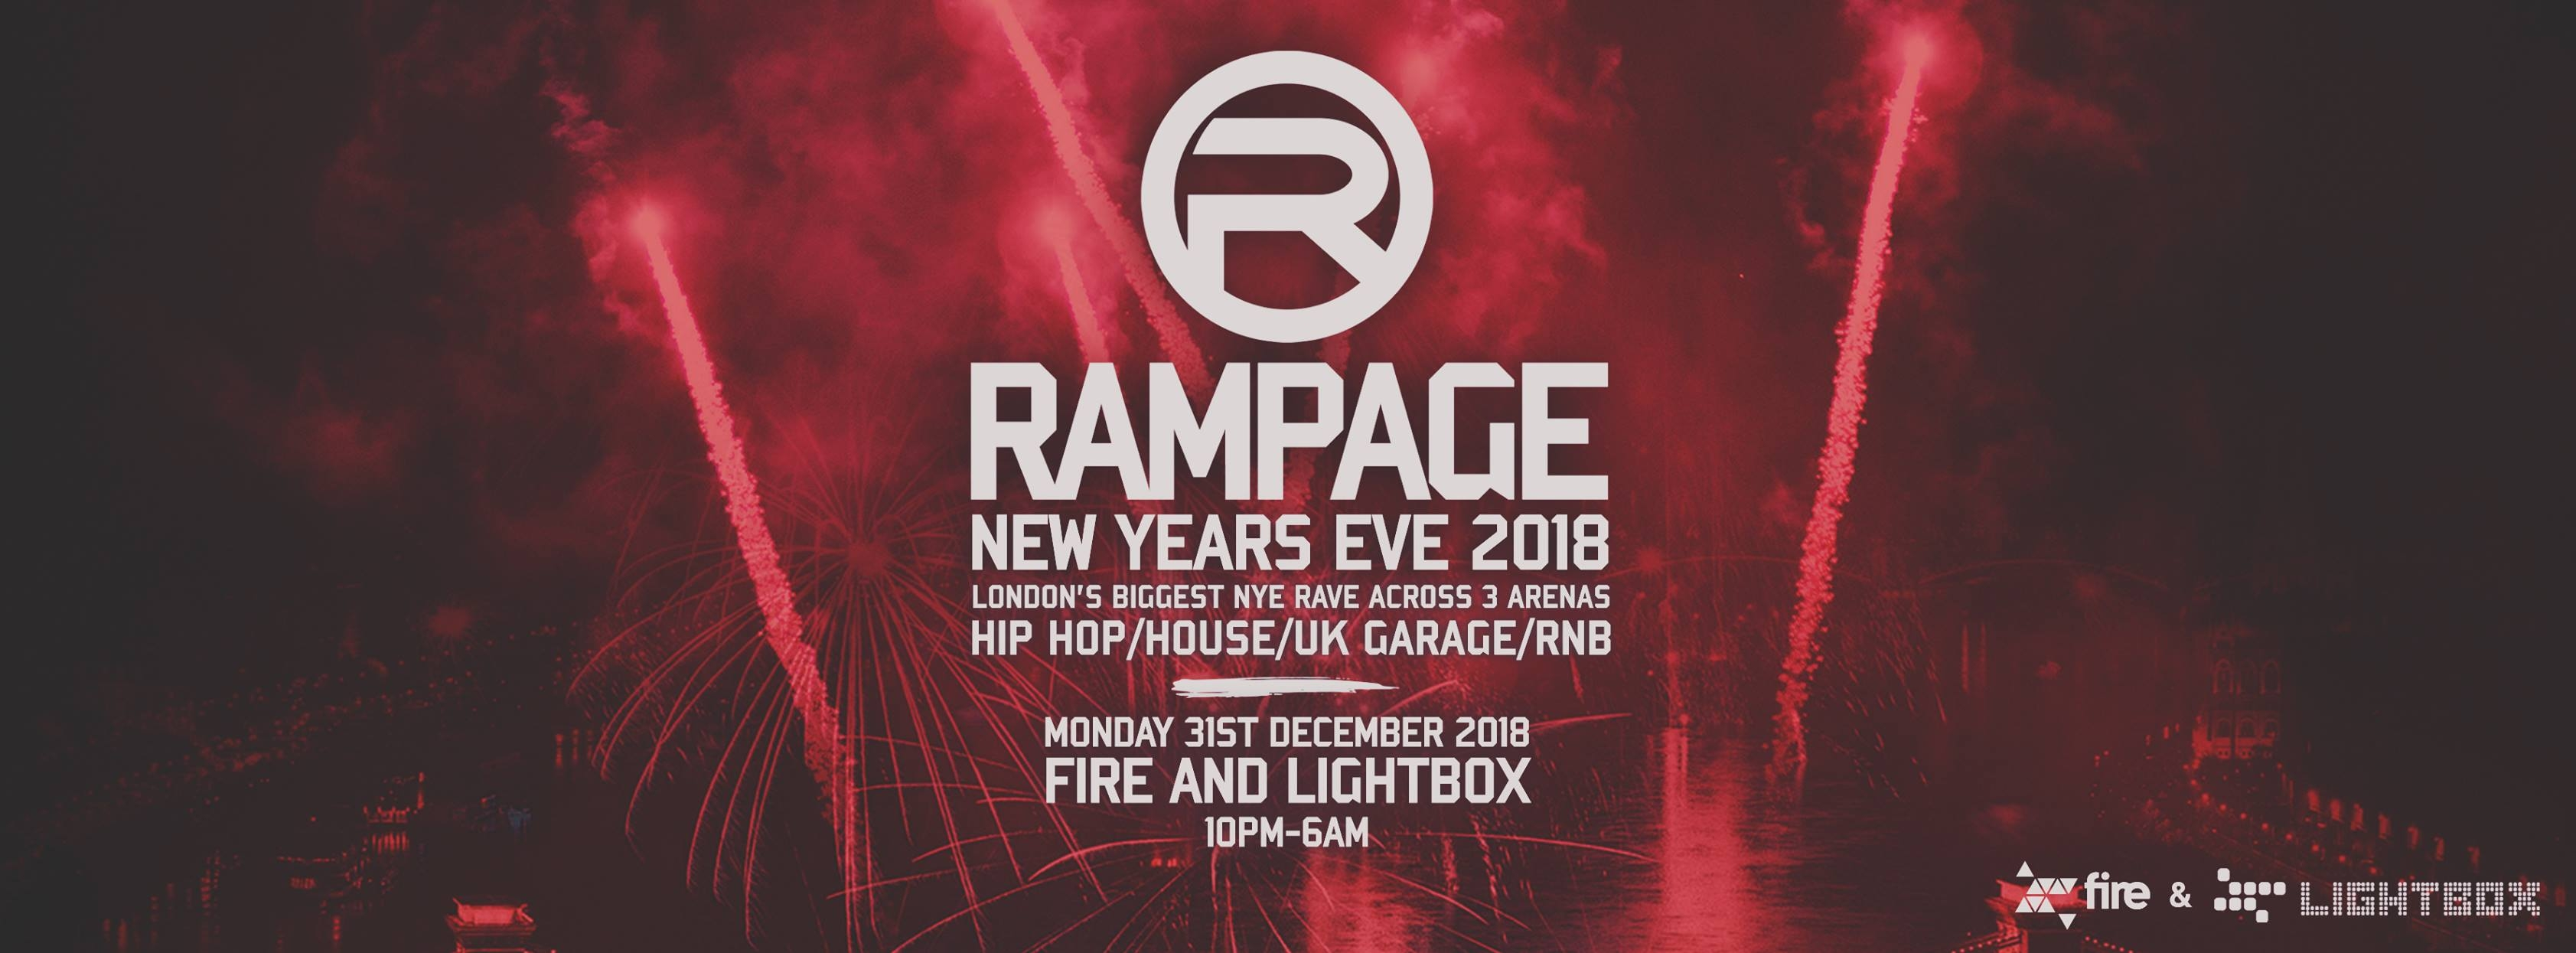 Rampage - New Years Eve 2018